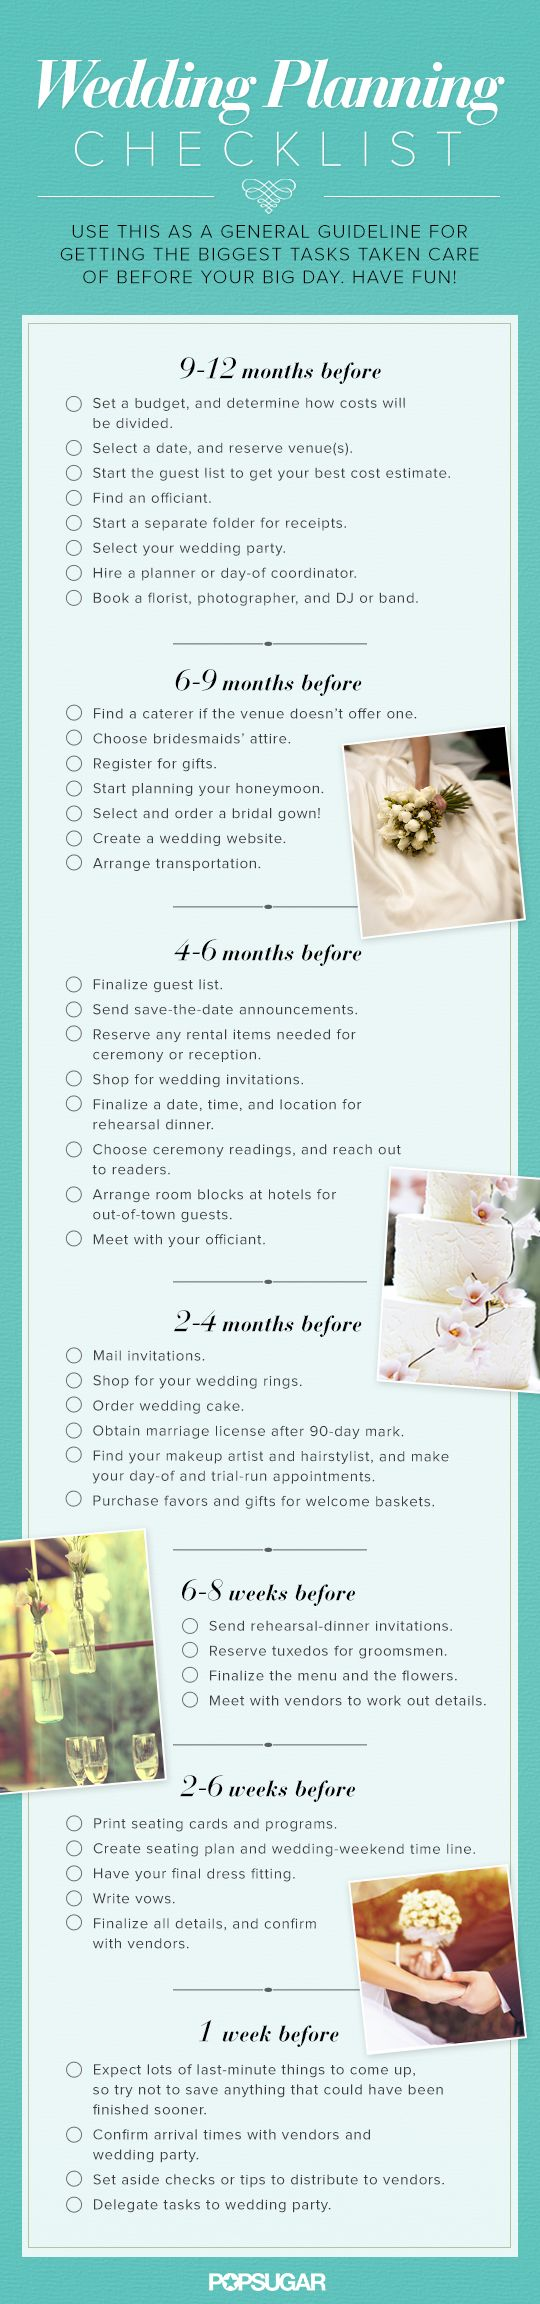 Top 5 Wedding Planning Checklists To Keep You On Track